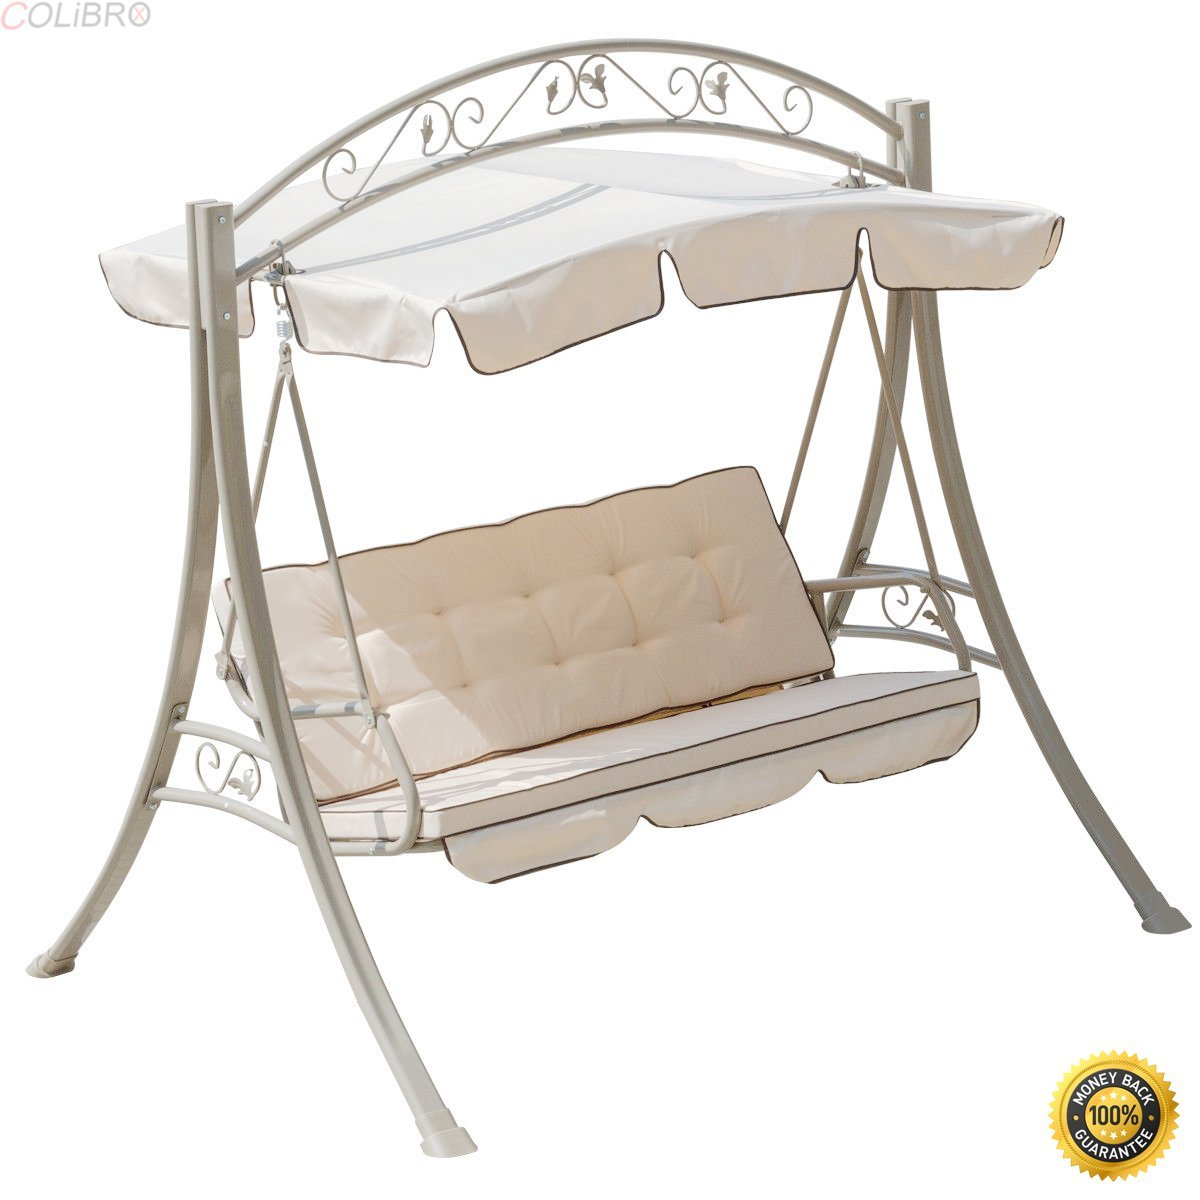 COLIBROX--3 Seats Hammock Swing Canopy Deluxe Chair Outdoor Patio Furniture Beige NEW,3 Person Larch Swing Loveseat Hammock,swing chair outdoor,hammock swing chair,lowes porch swing